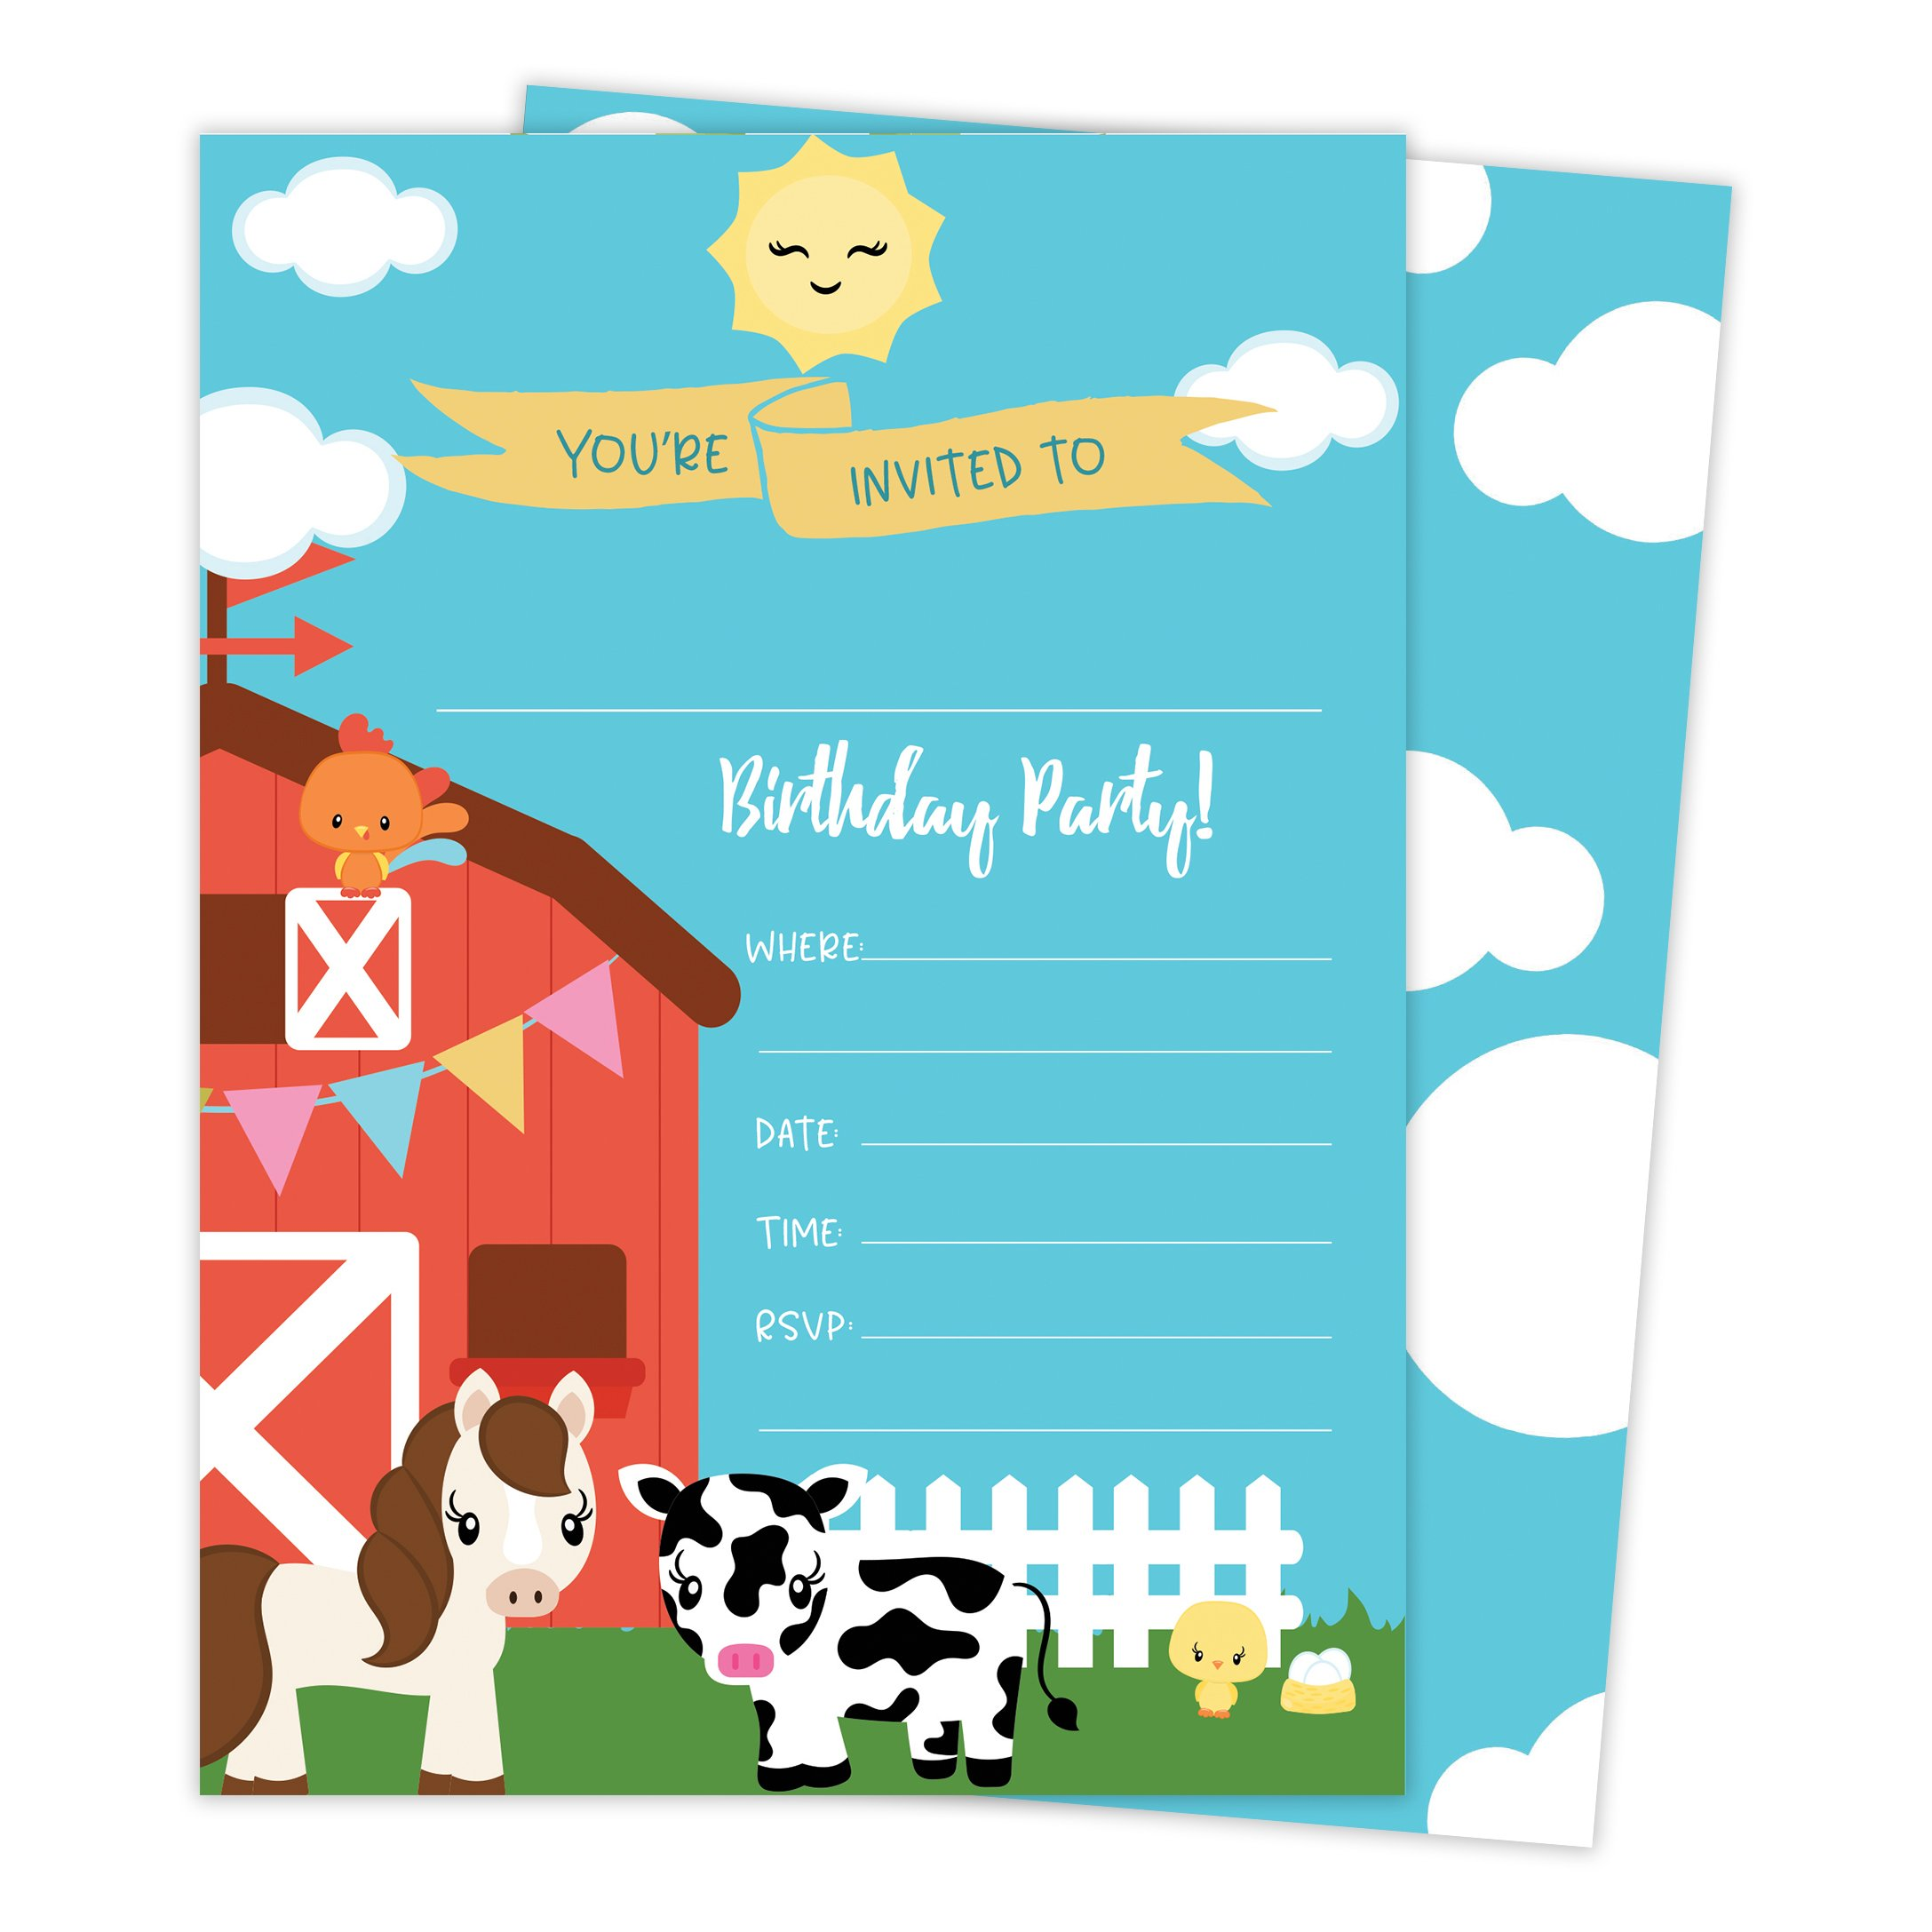 Barnyard Farm Happy Birthday Invitations Invite Cards (25 Count) with Envelopes & Seal Stickers Boys Girls Kids Party (25ct) by Desert Cactus (Image #1)